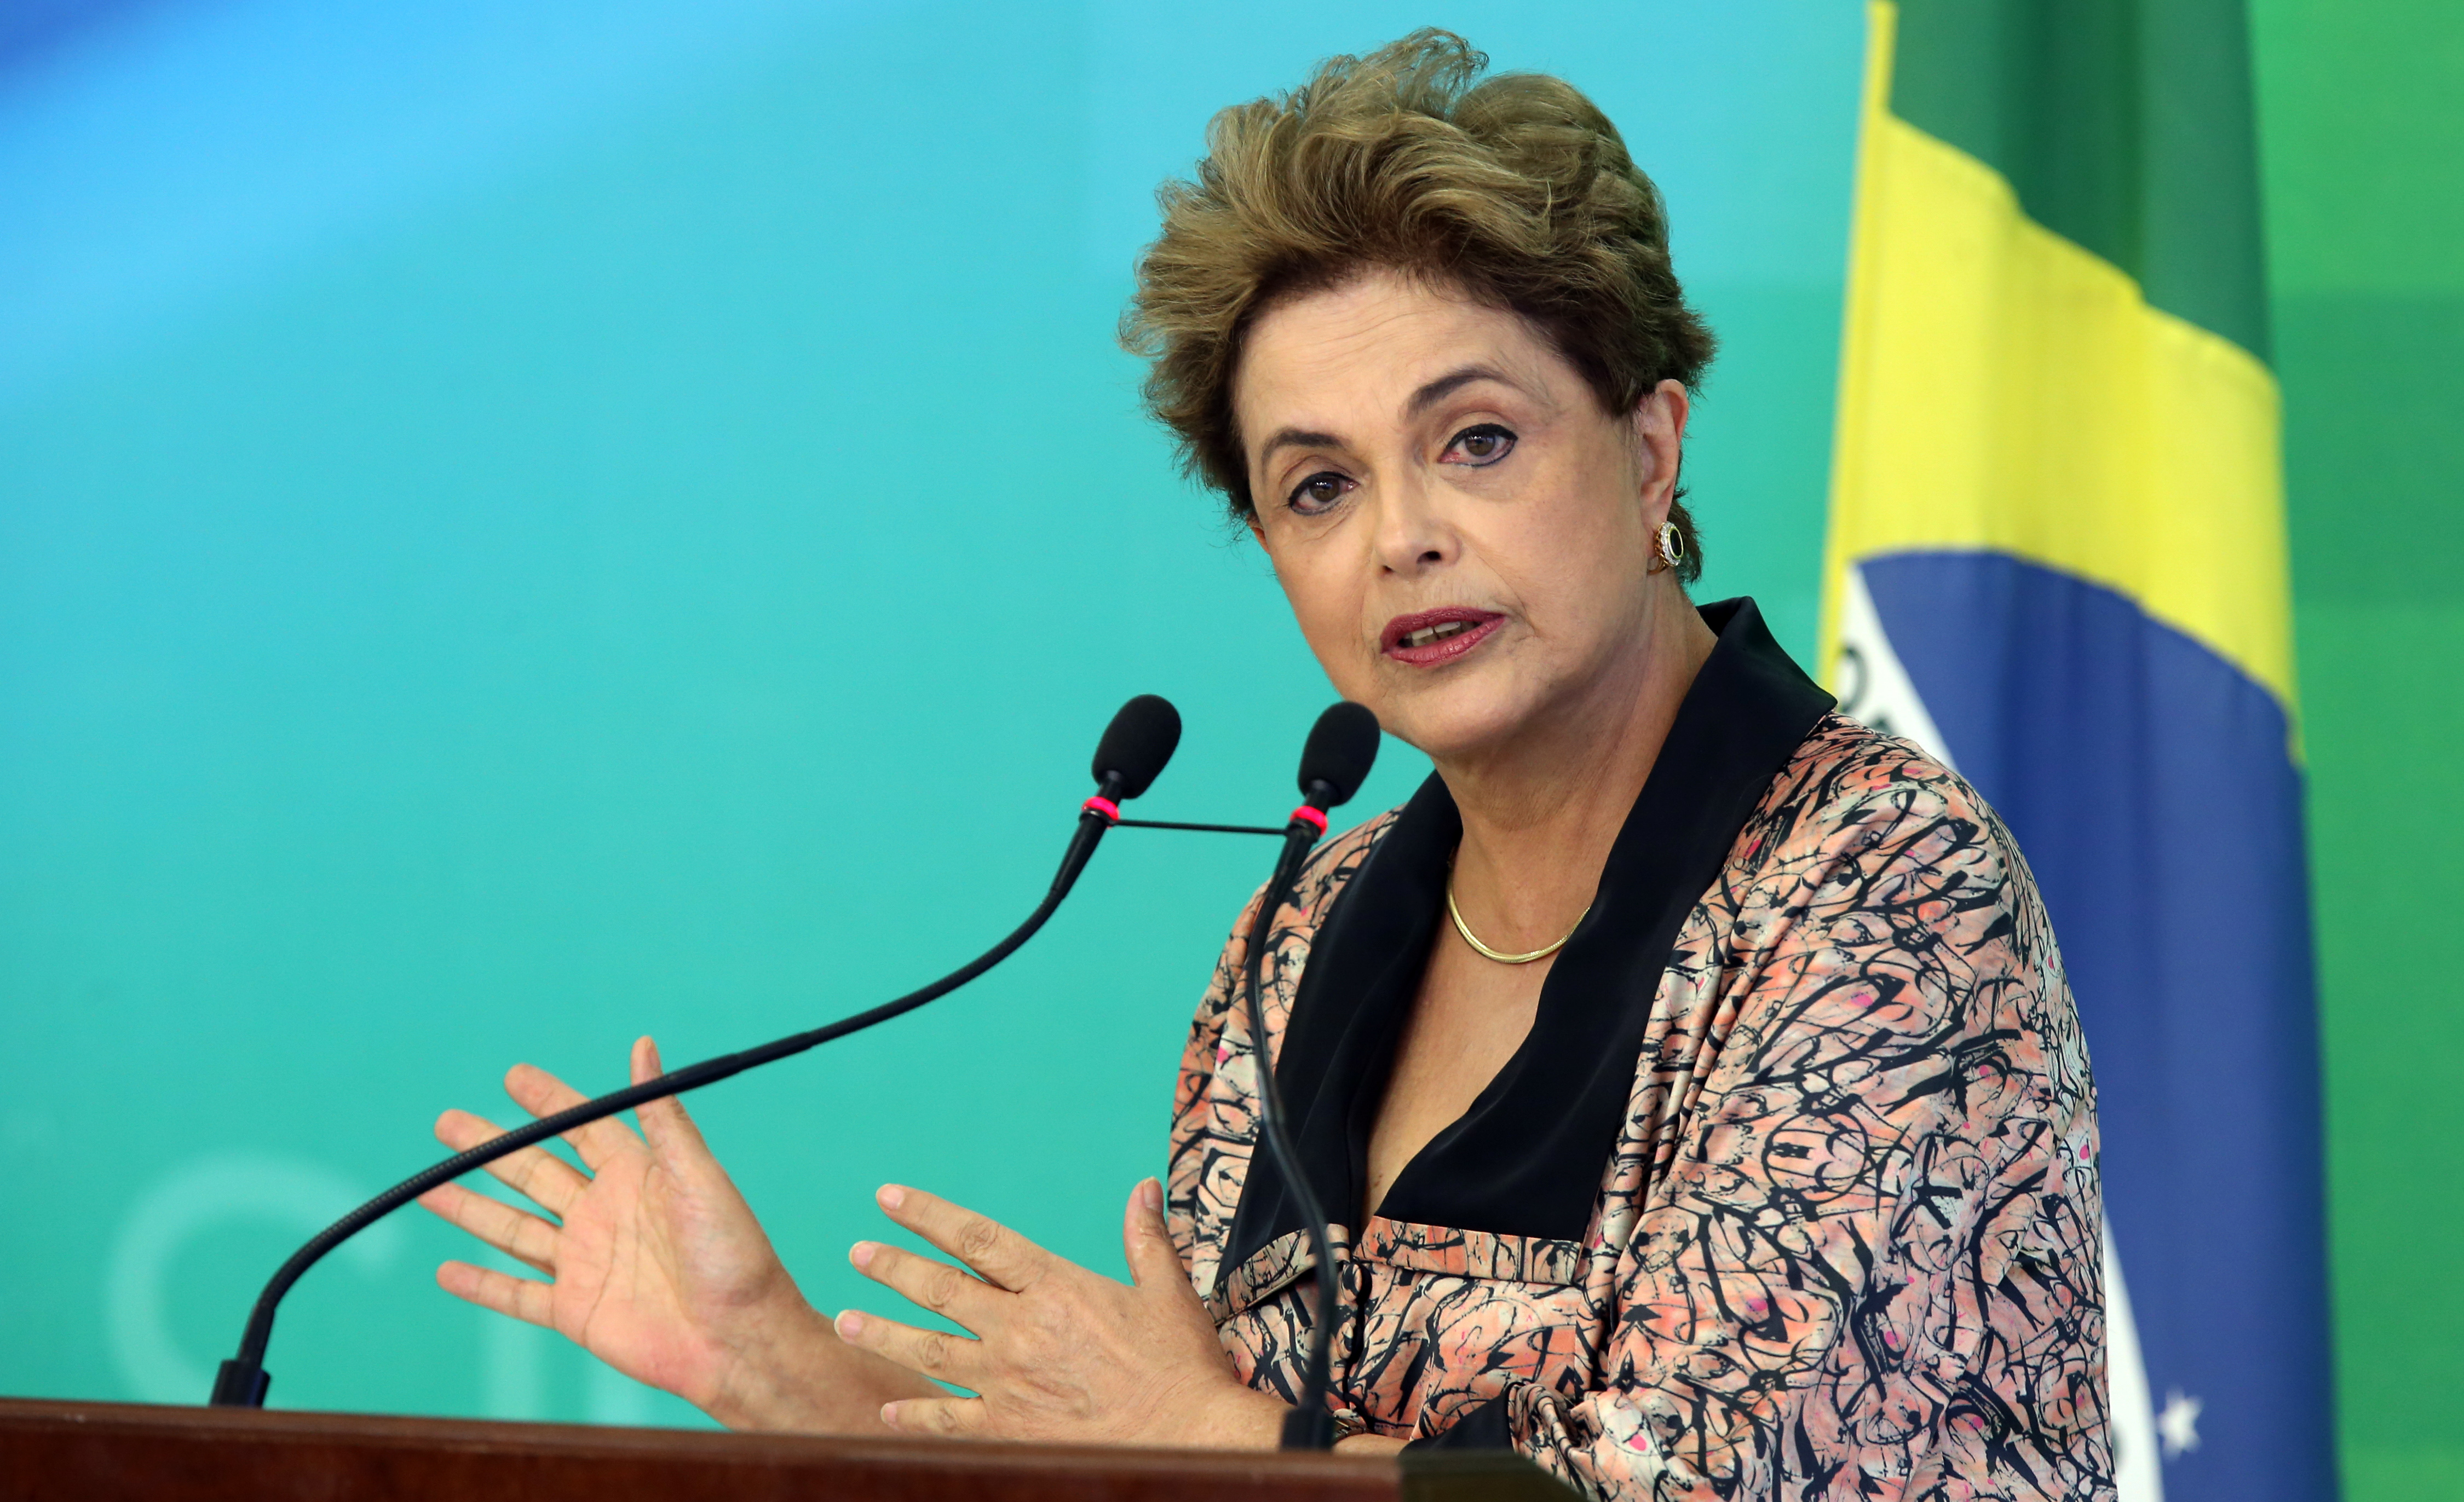 Brazil's President Dilma Rousseff speaks to members of the foreign press in Brasília, on April 19, 2016